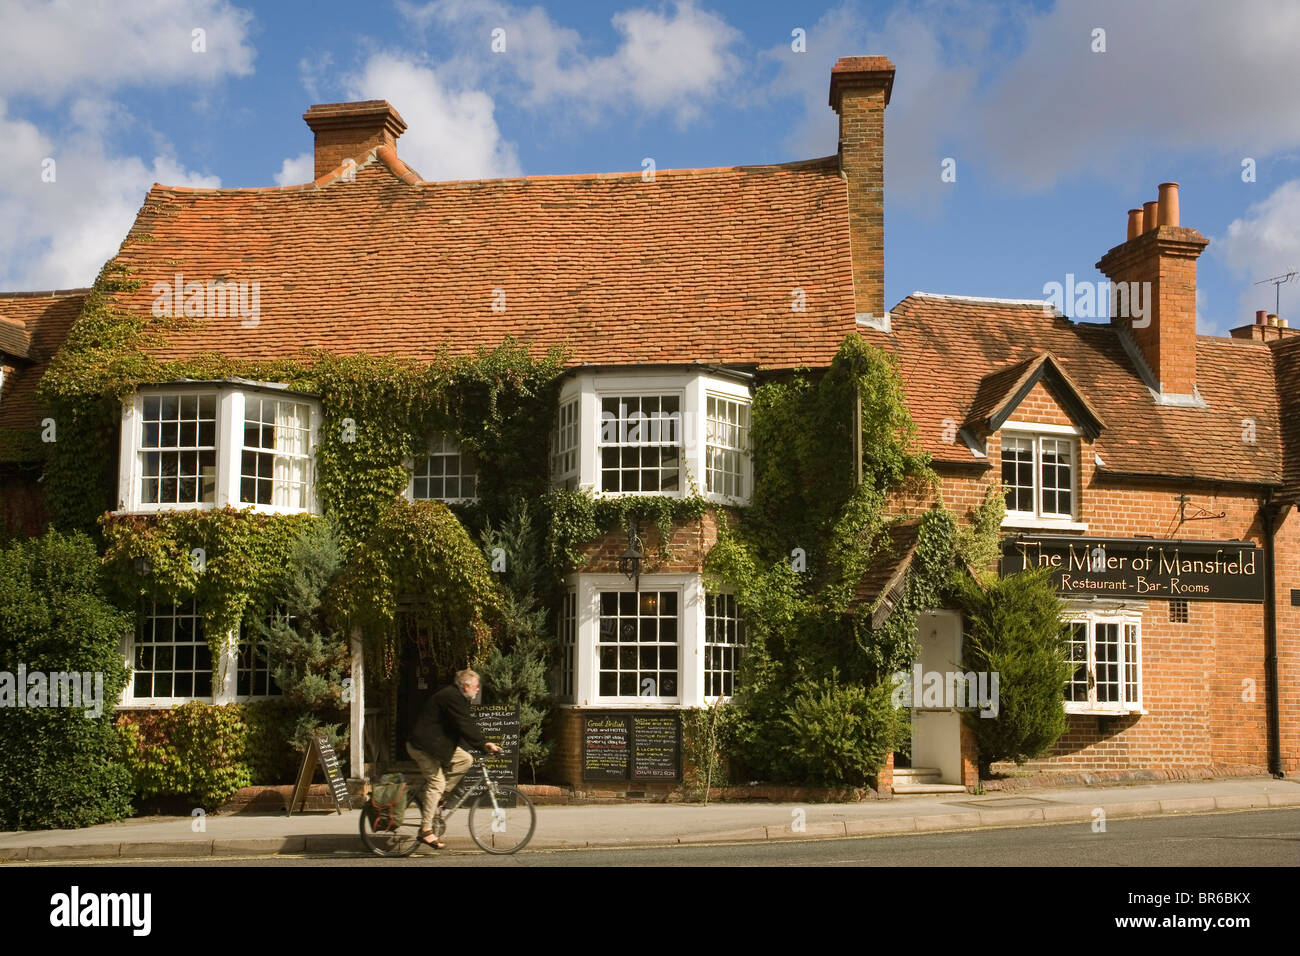 England Oxfordshire Goring Miller of Mansfield pub - Stock Image